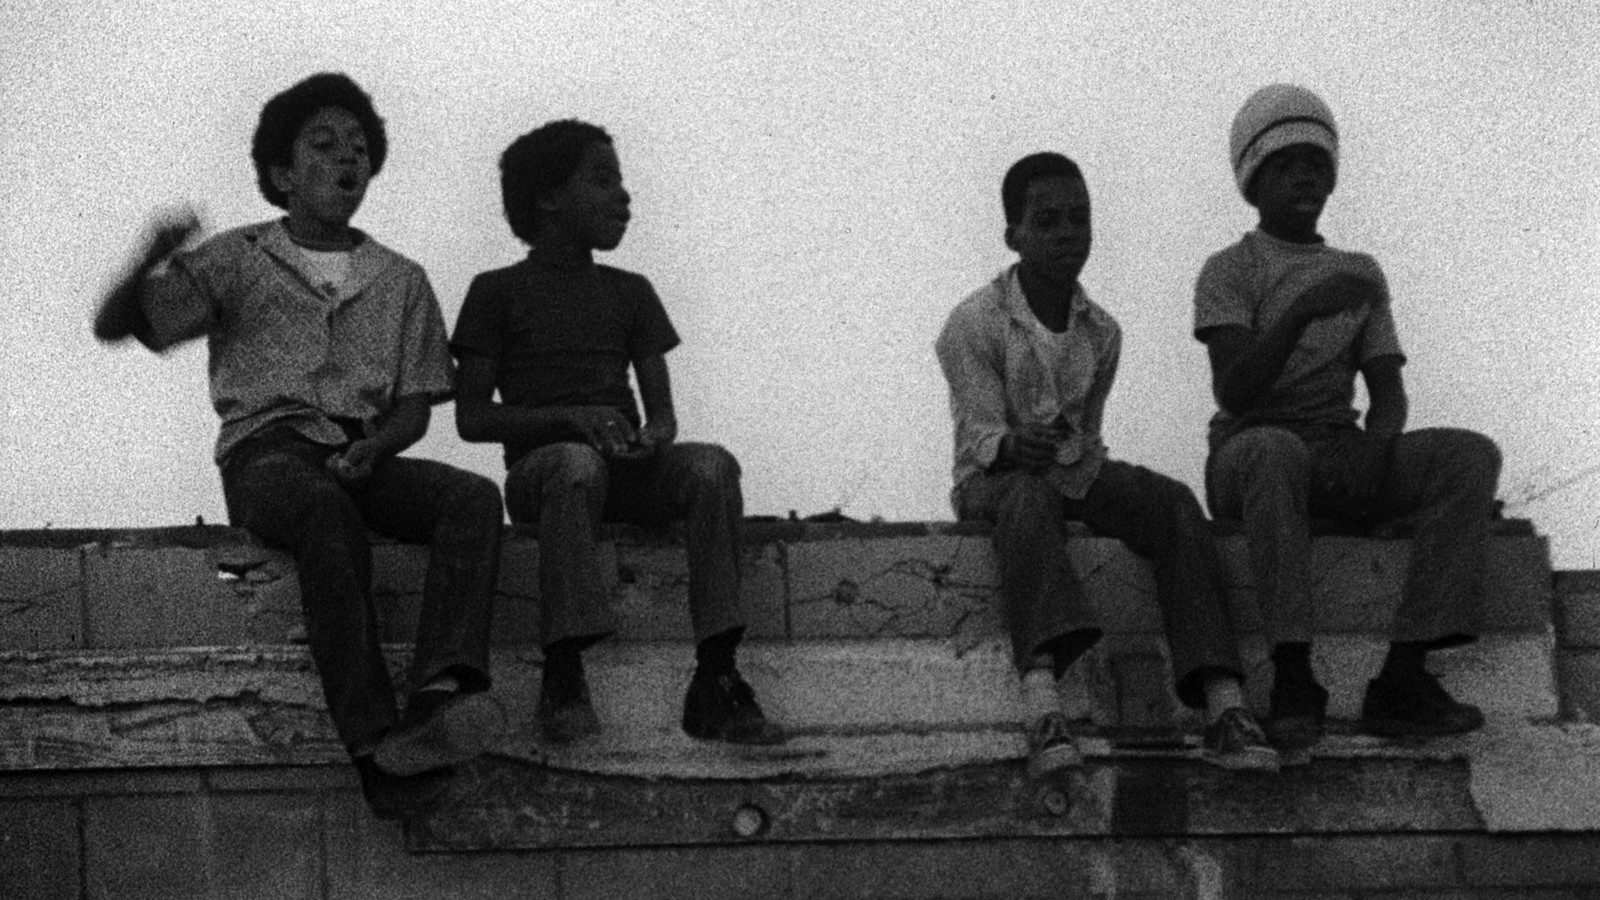 Killer of Sheep, Charles Burnett, African American Film, African American Cinema, National Museum of African American History and Culture Film Festival, Smithsonian African American Film Festival, Black Film Festival, KOLUMN Magazine, KOLUMN, KINDR'D Magazine, KINDR'D